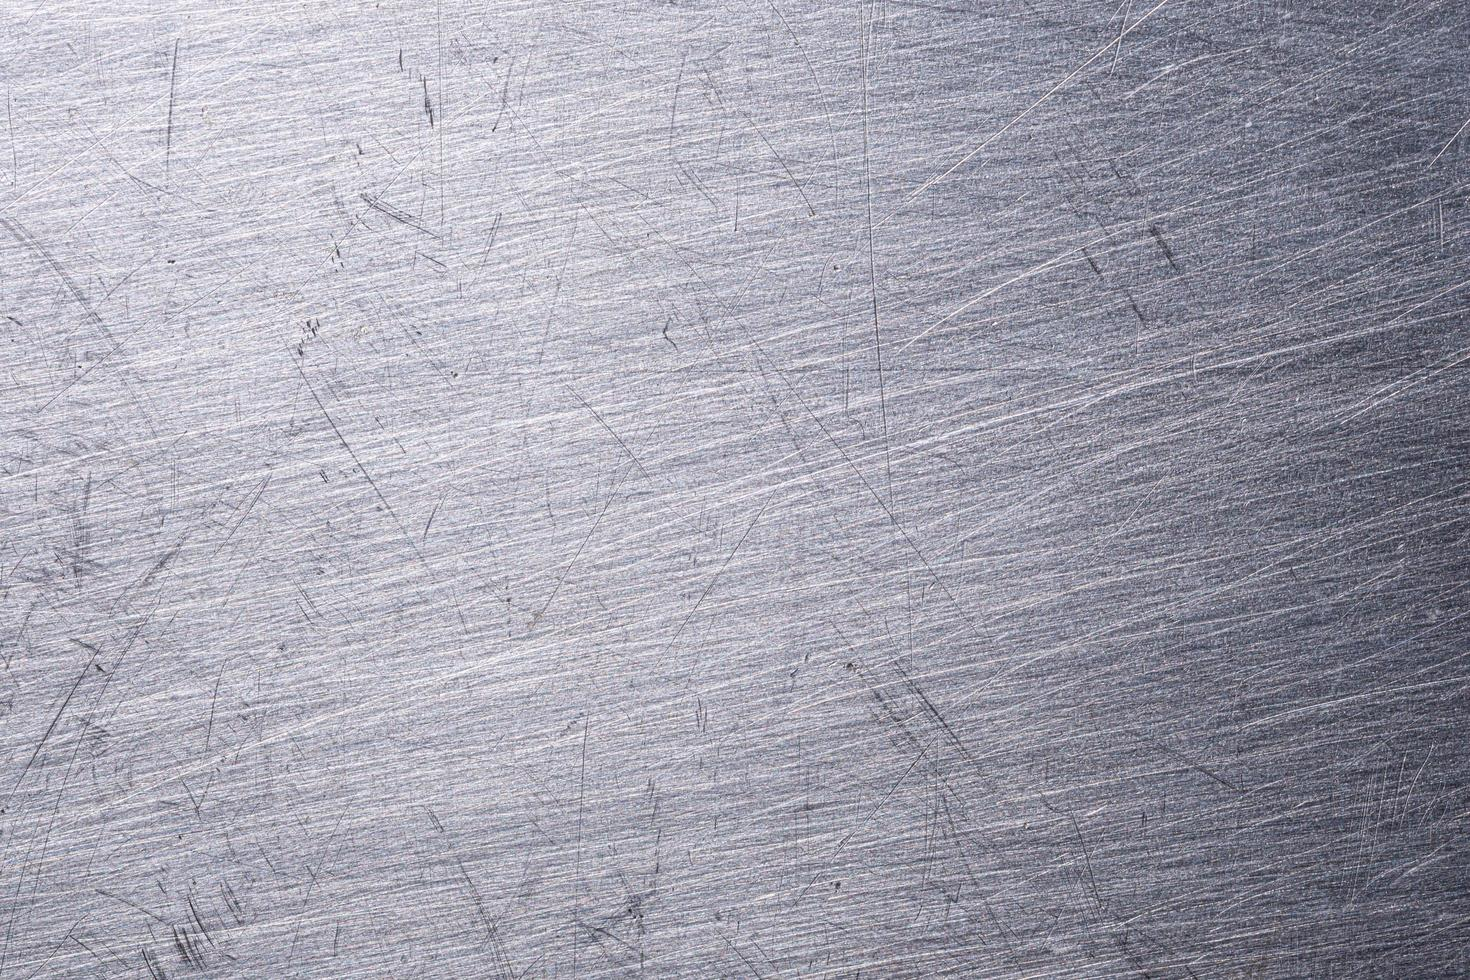 Stainless steel background photo